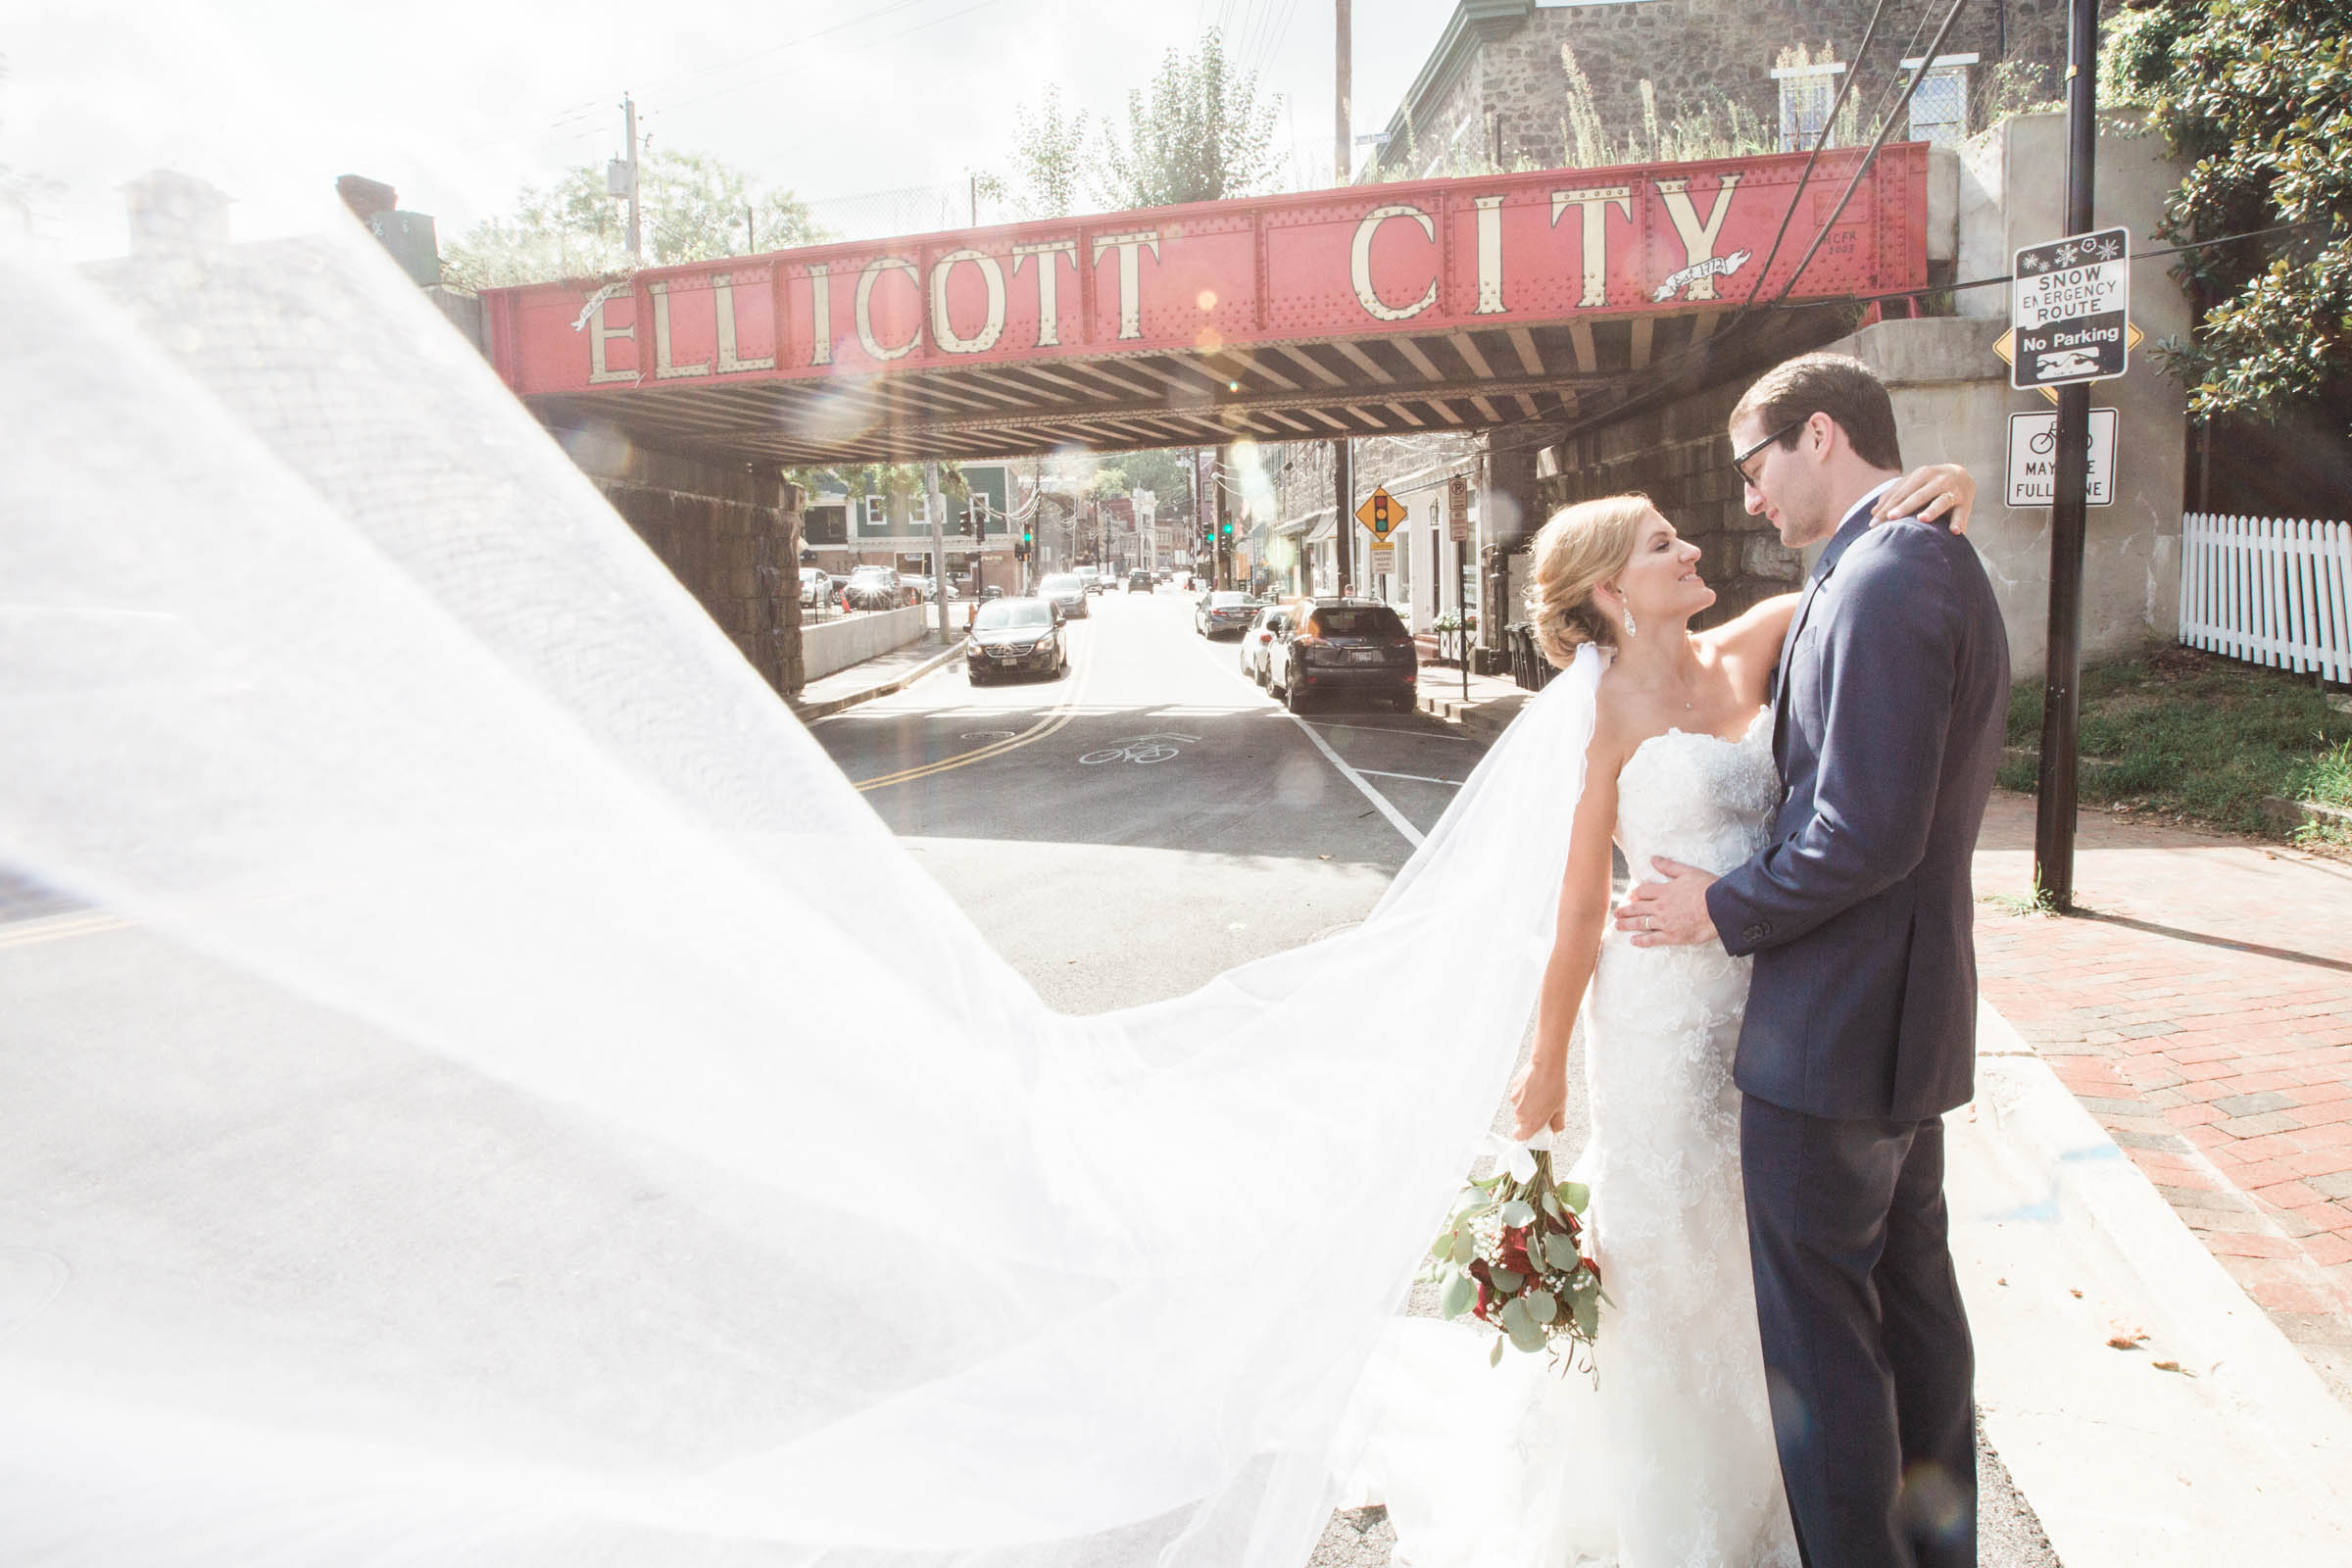 Top Wedding Photography in Ellicott City Maryland by Megapixels Media.jpg